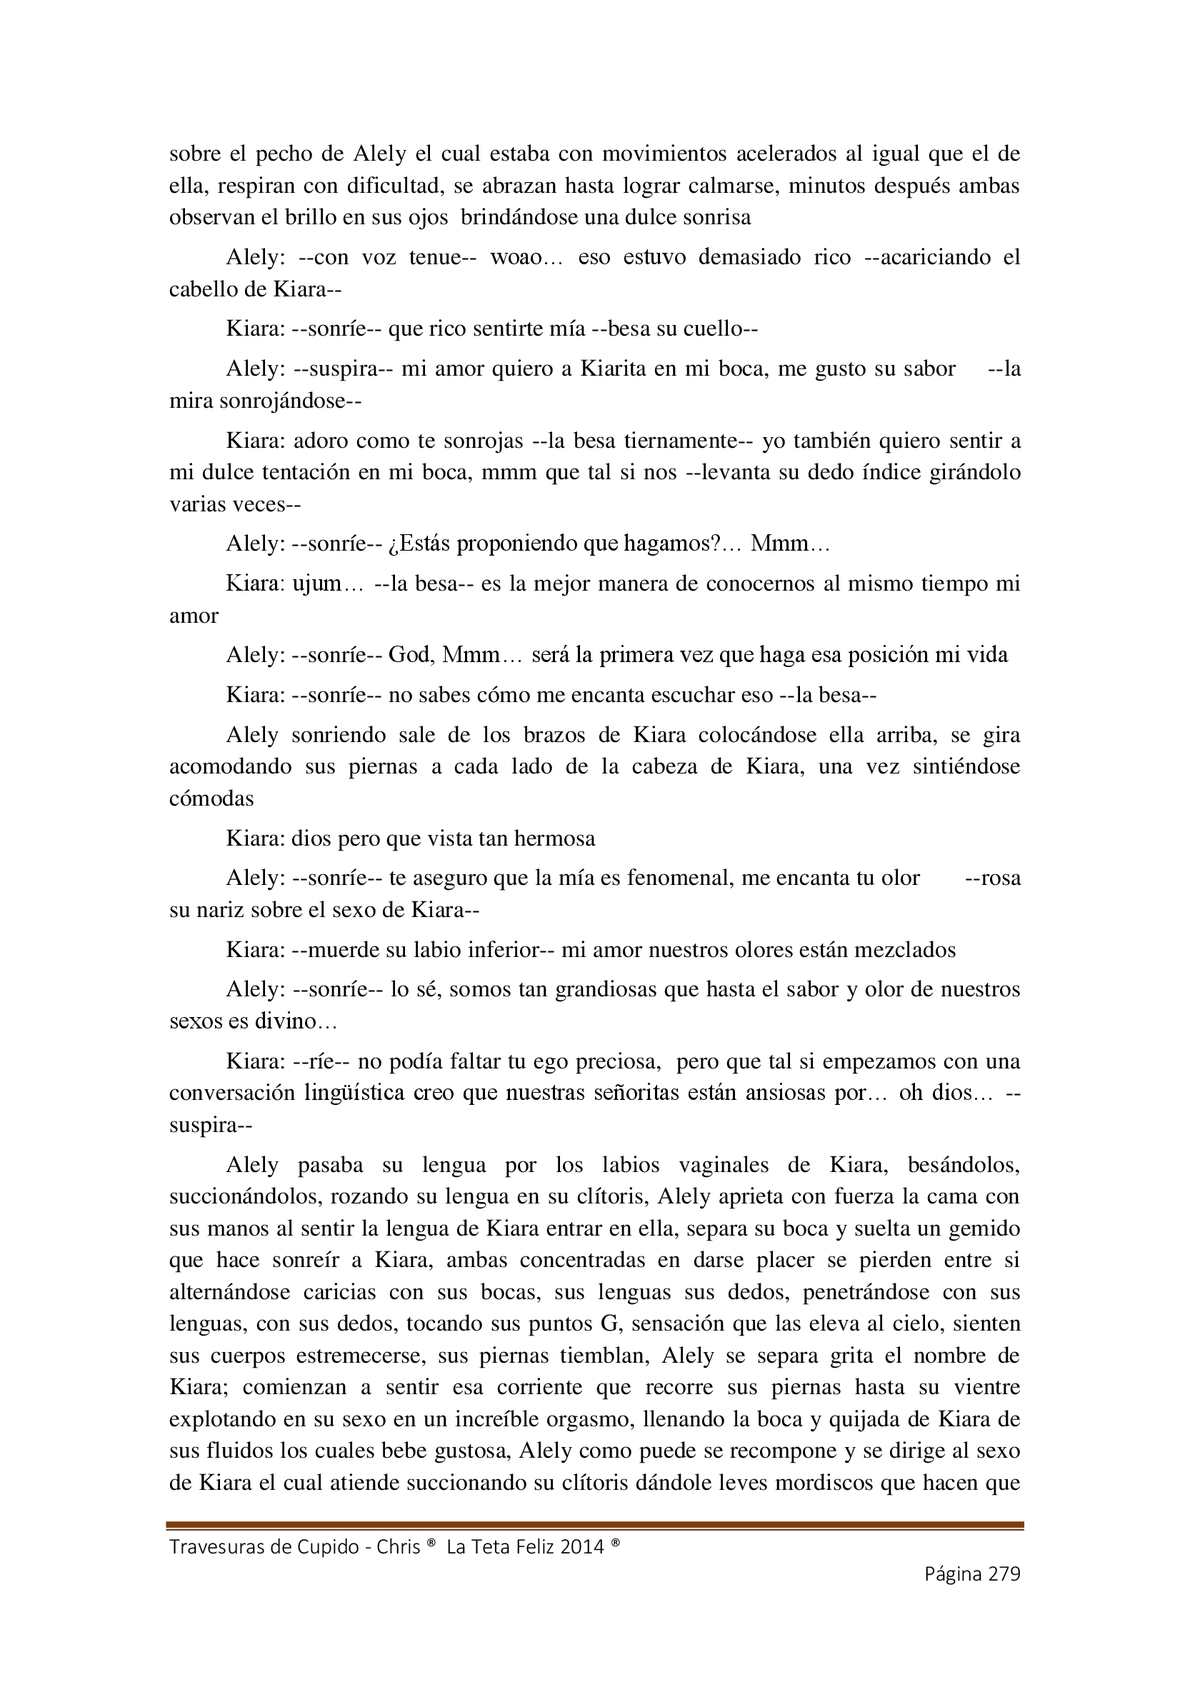 Page 279